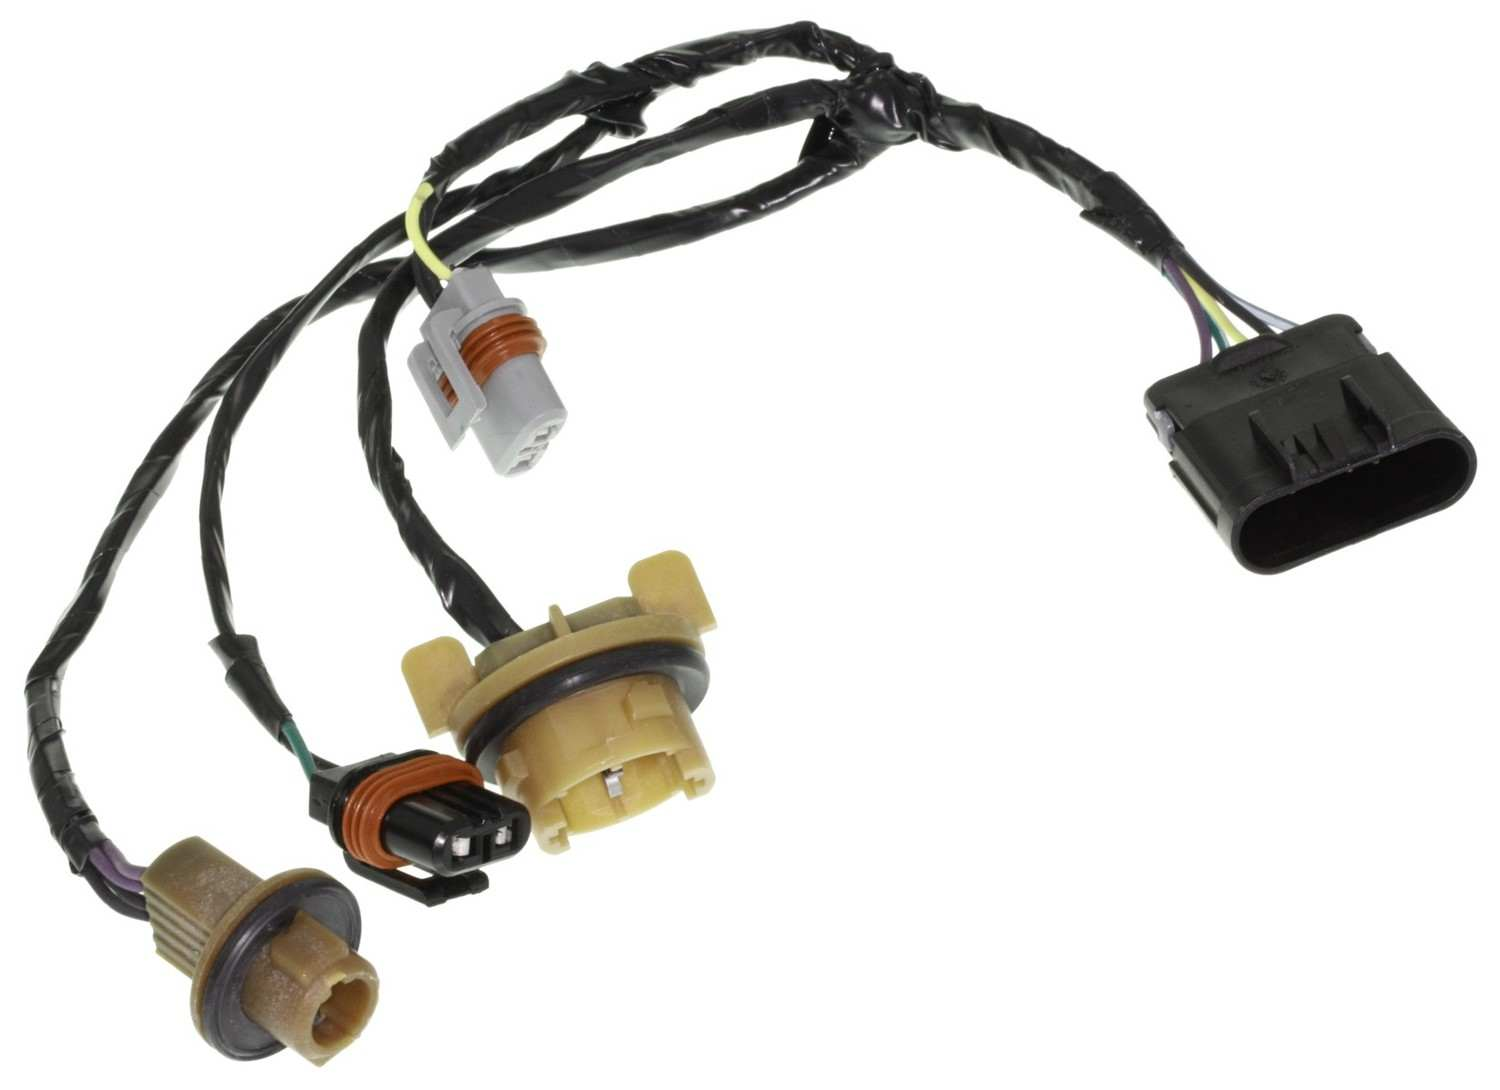 hight resolution of buick lucerne headlight wiring harness buick diy wiring diagrams description headlight wiring harness airtex 1p2178 fits